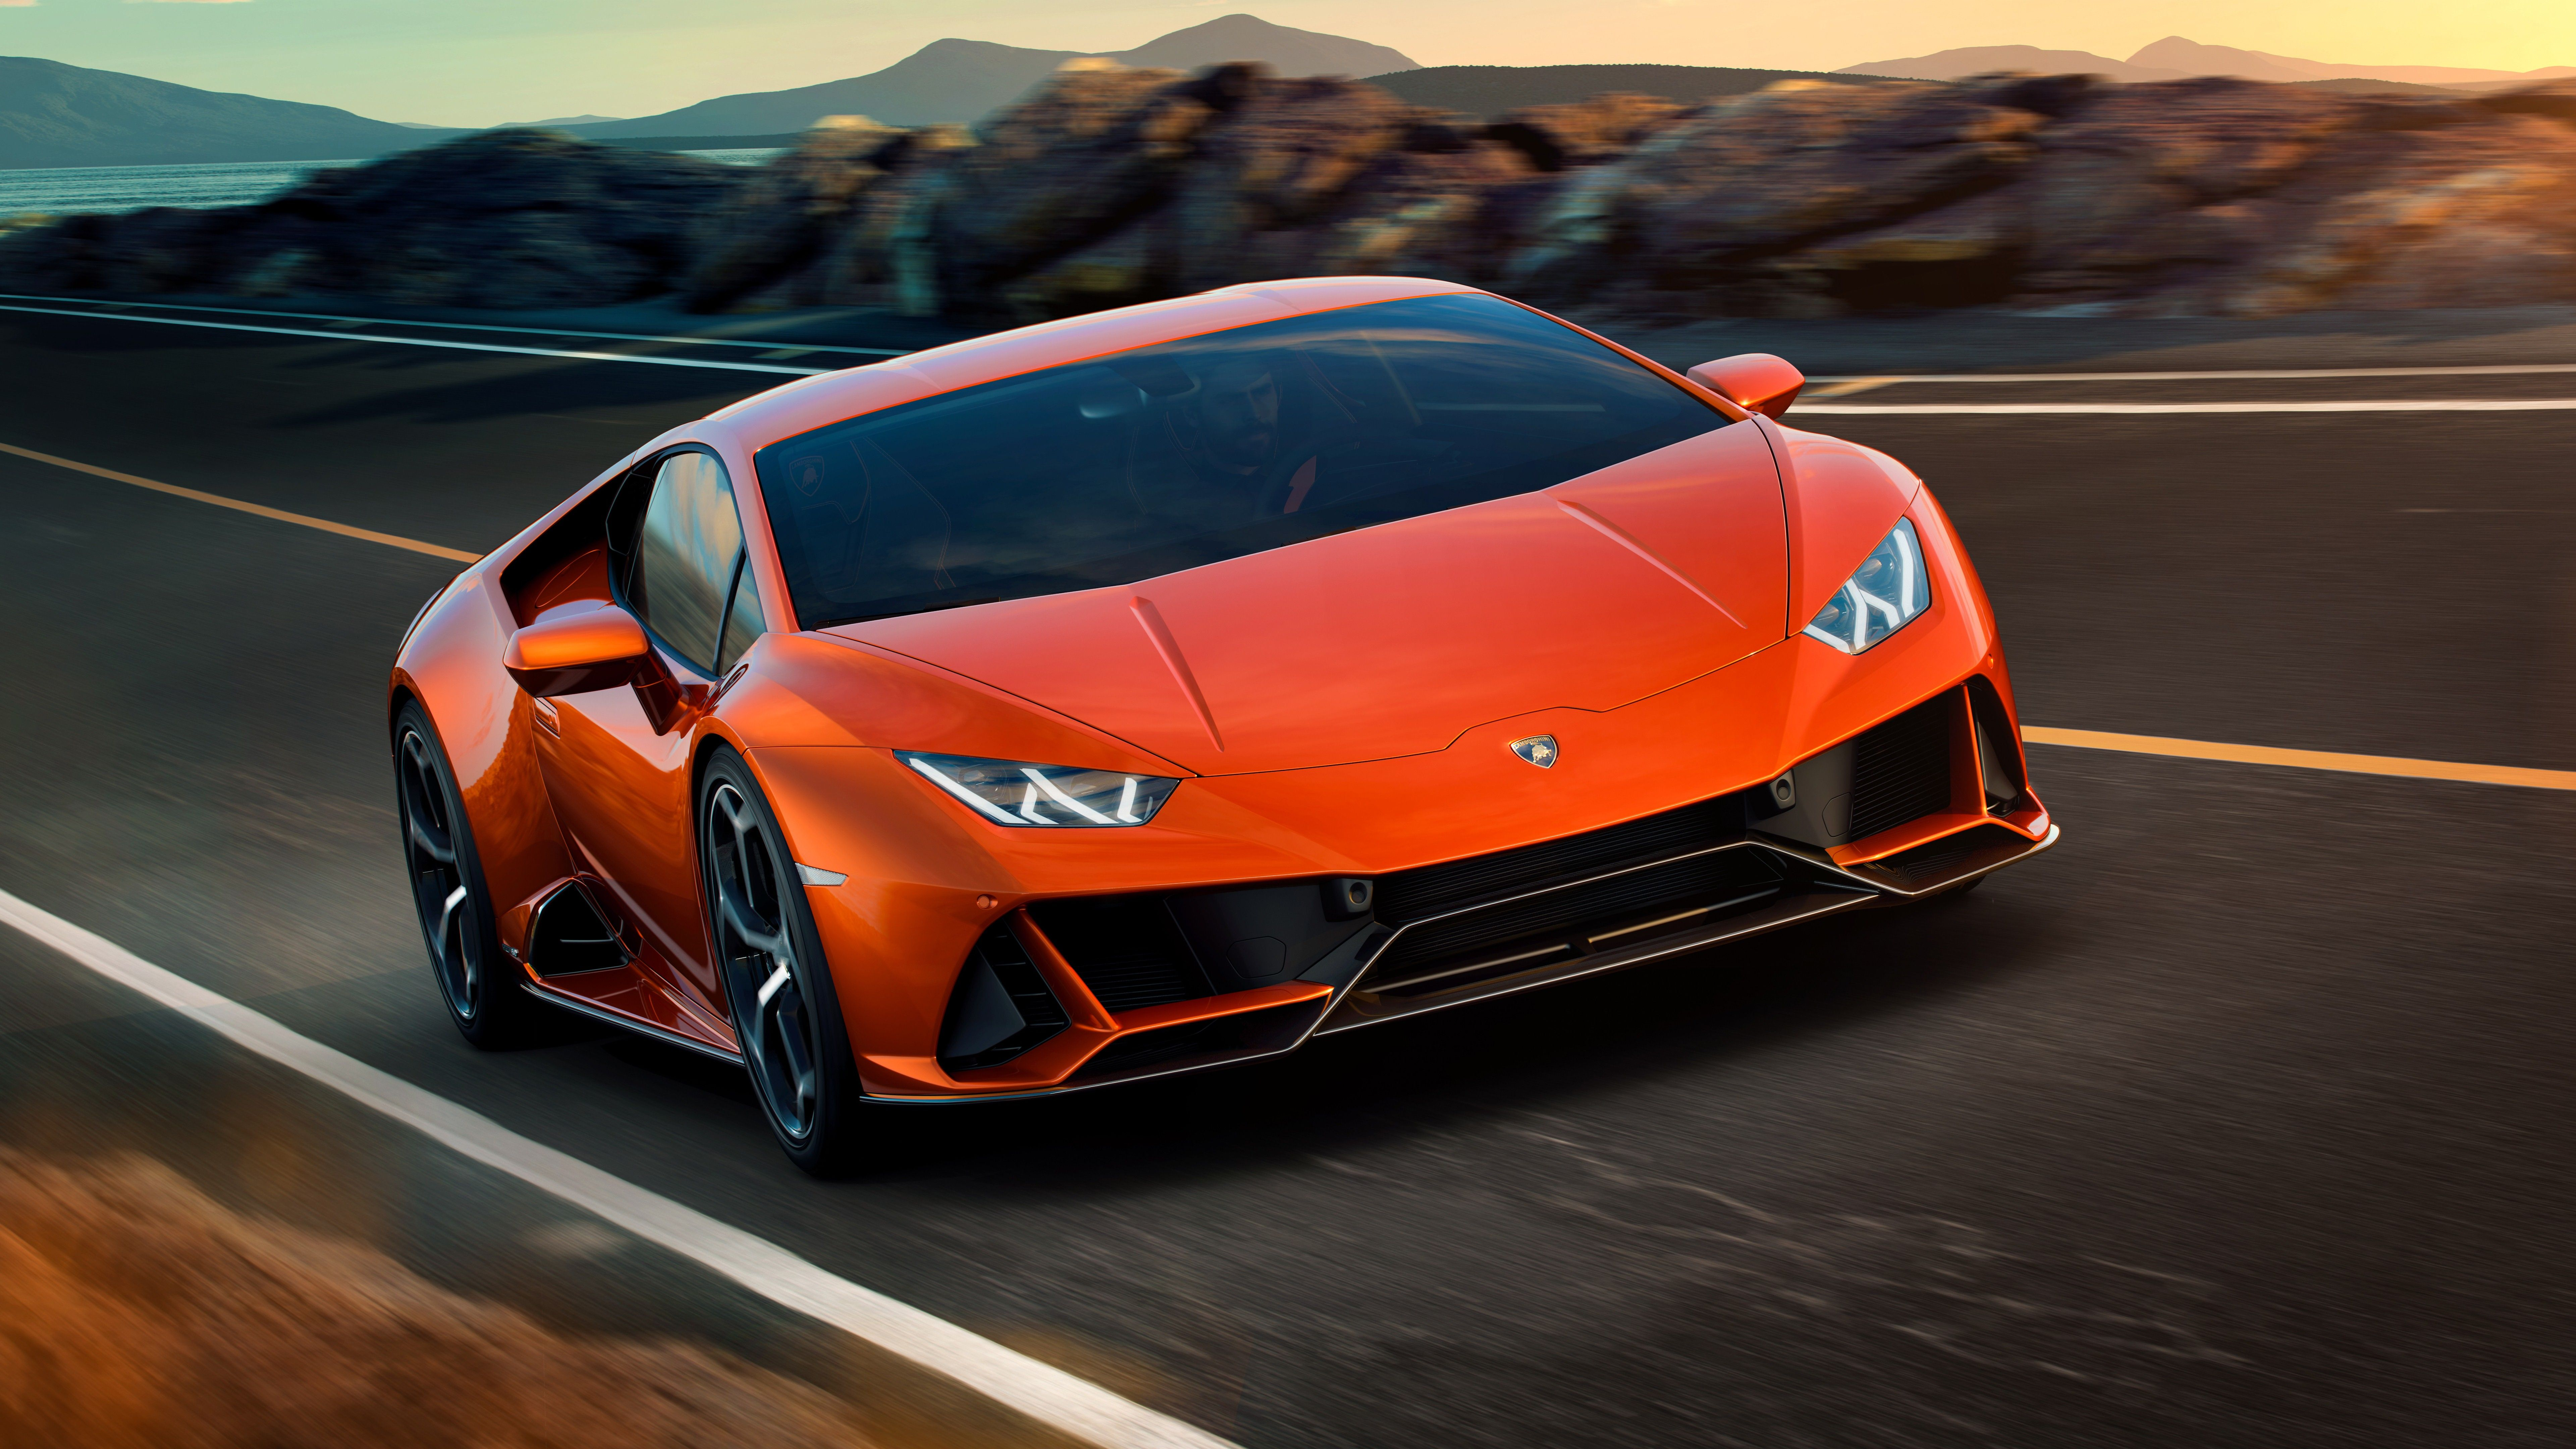 64k Ultra Hd Cars Wallpapers Top Free 64k Ultra Hd Cars Backgrounds Wallpaperaccess